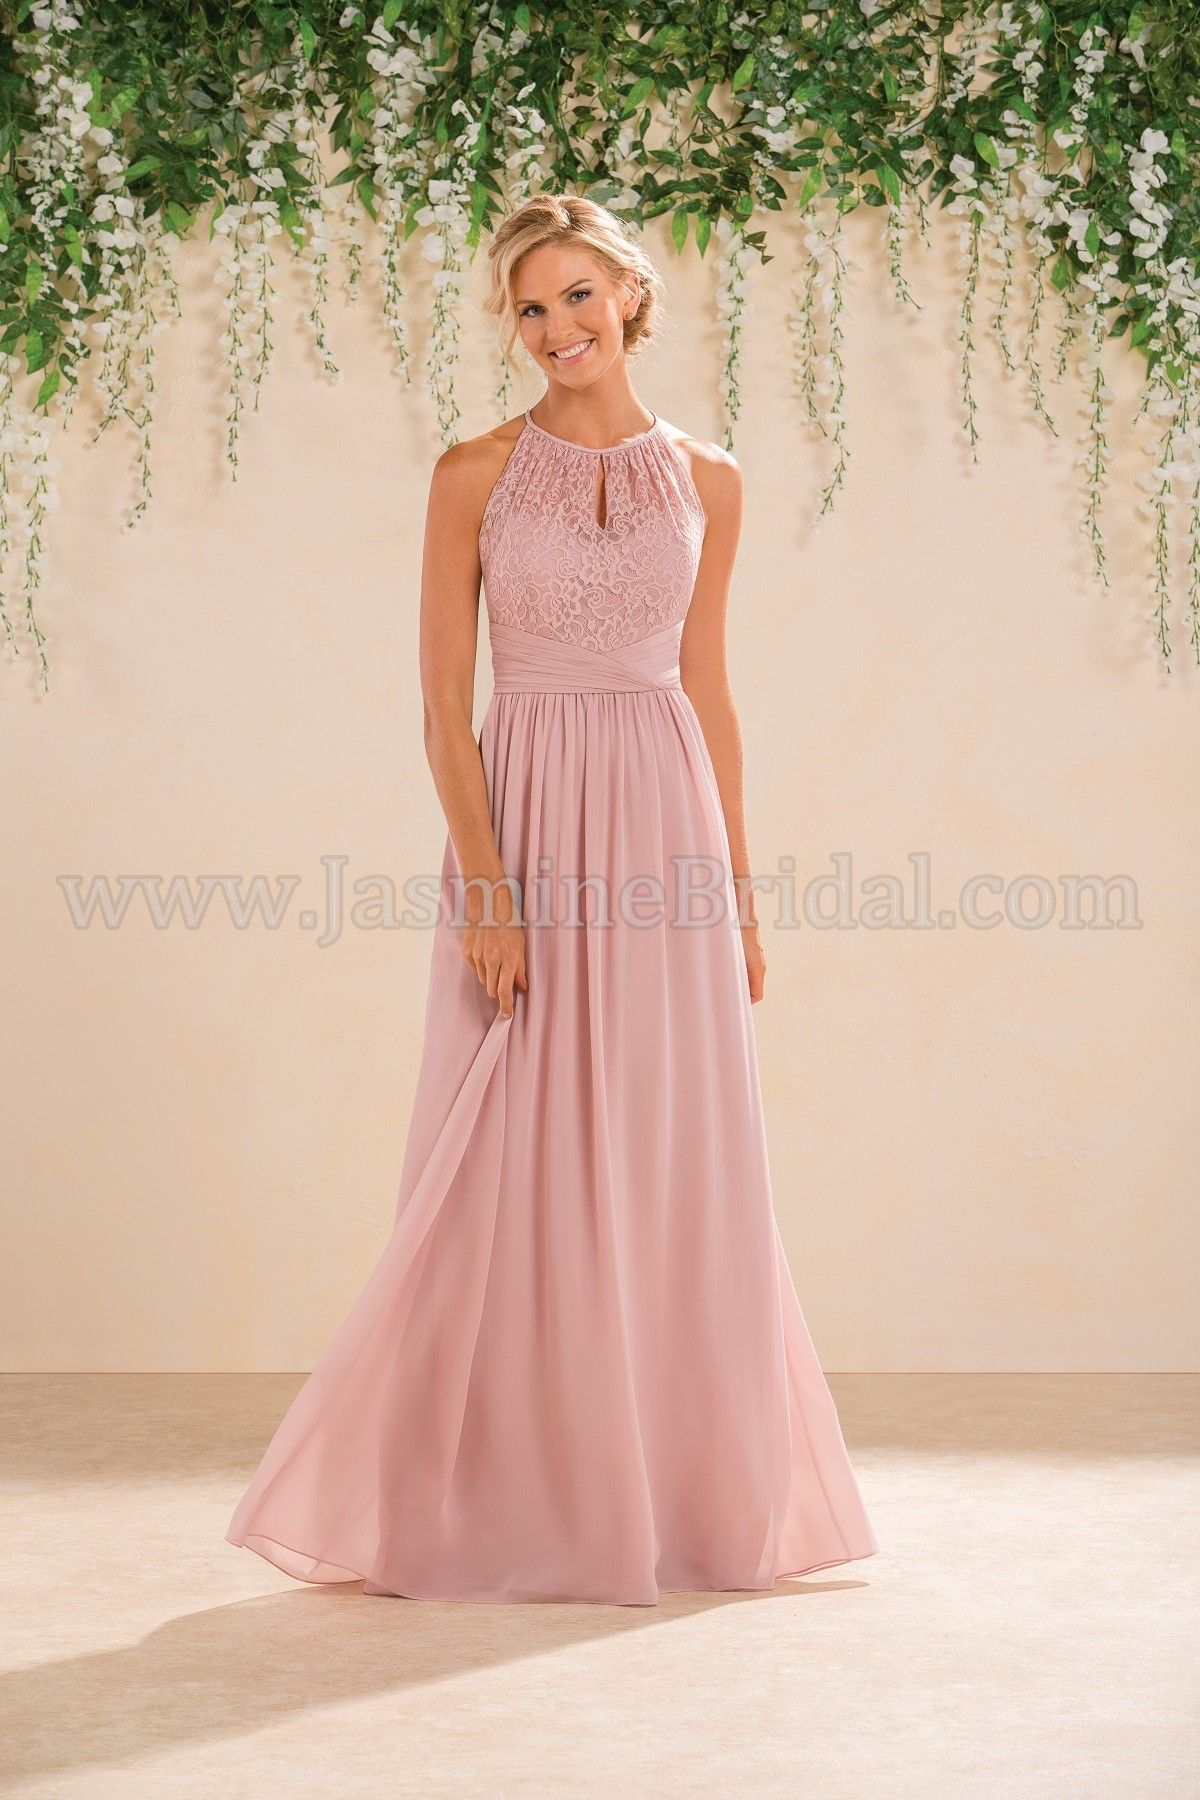 Jasmine Bridal Bridesmaid Dress B2 Style B183016 in Misty Pink ...